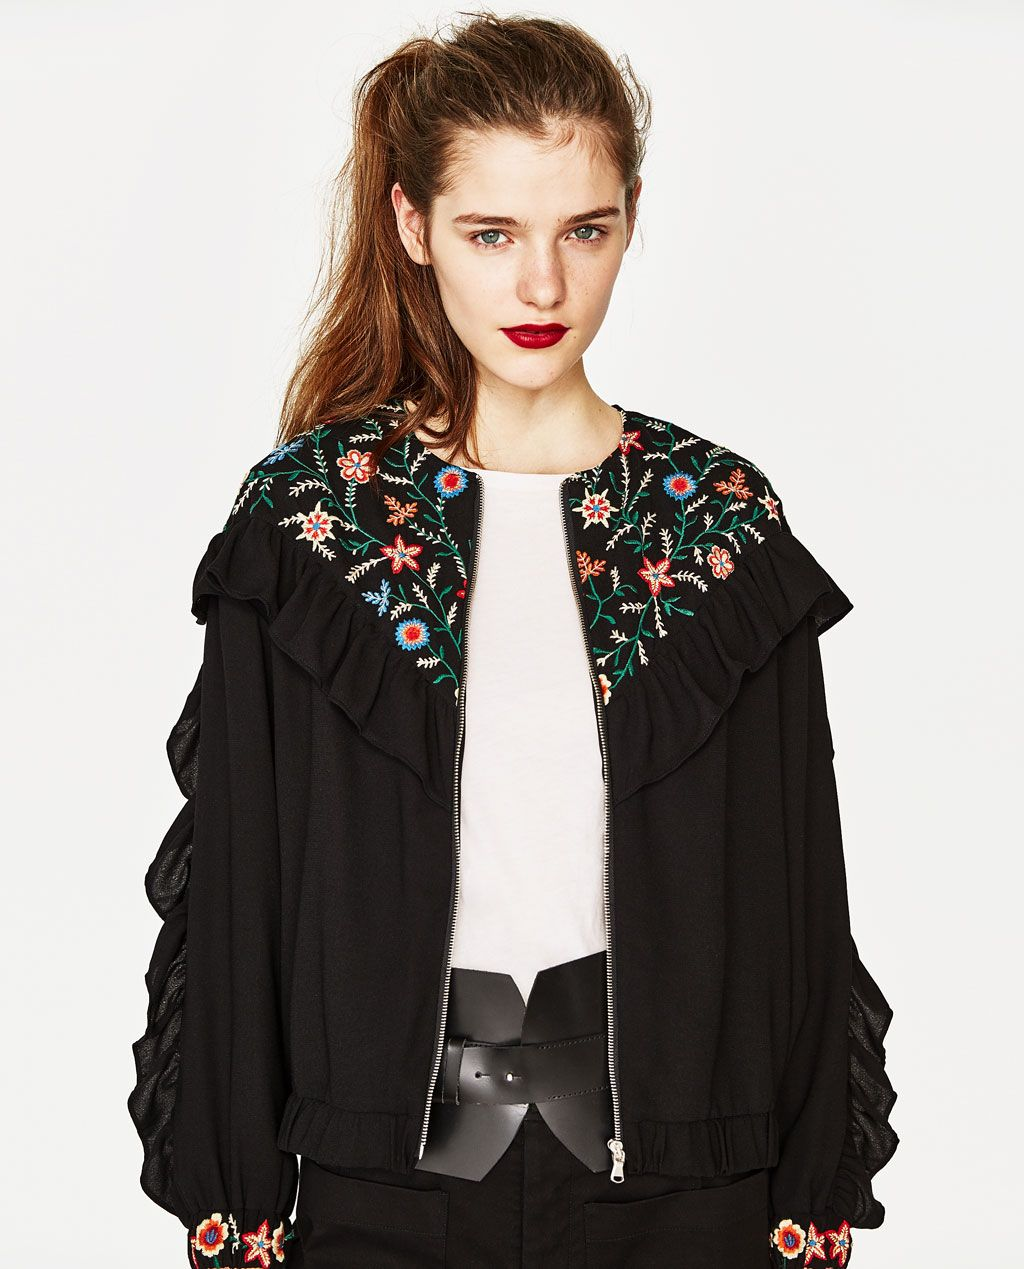 a07a2e6a EMBROIDERED JACKET WITH FRILLS-NEW IN-TRF | ZARA United States ...